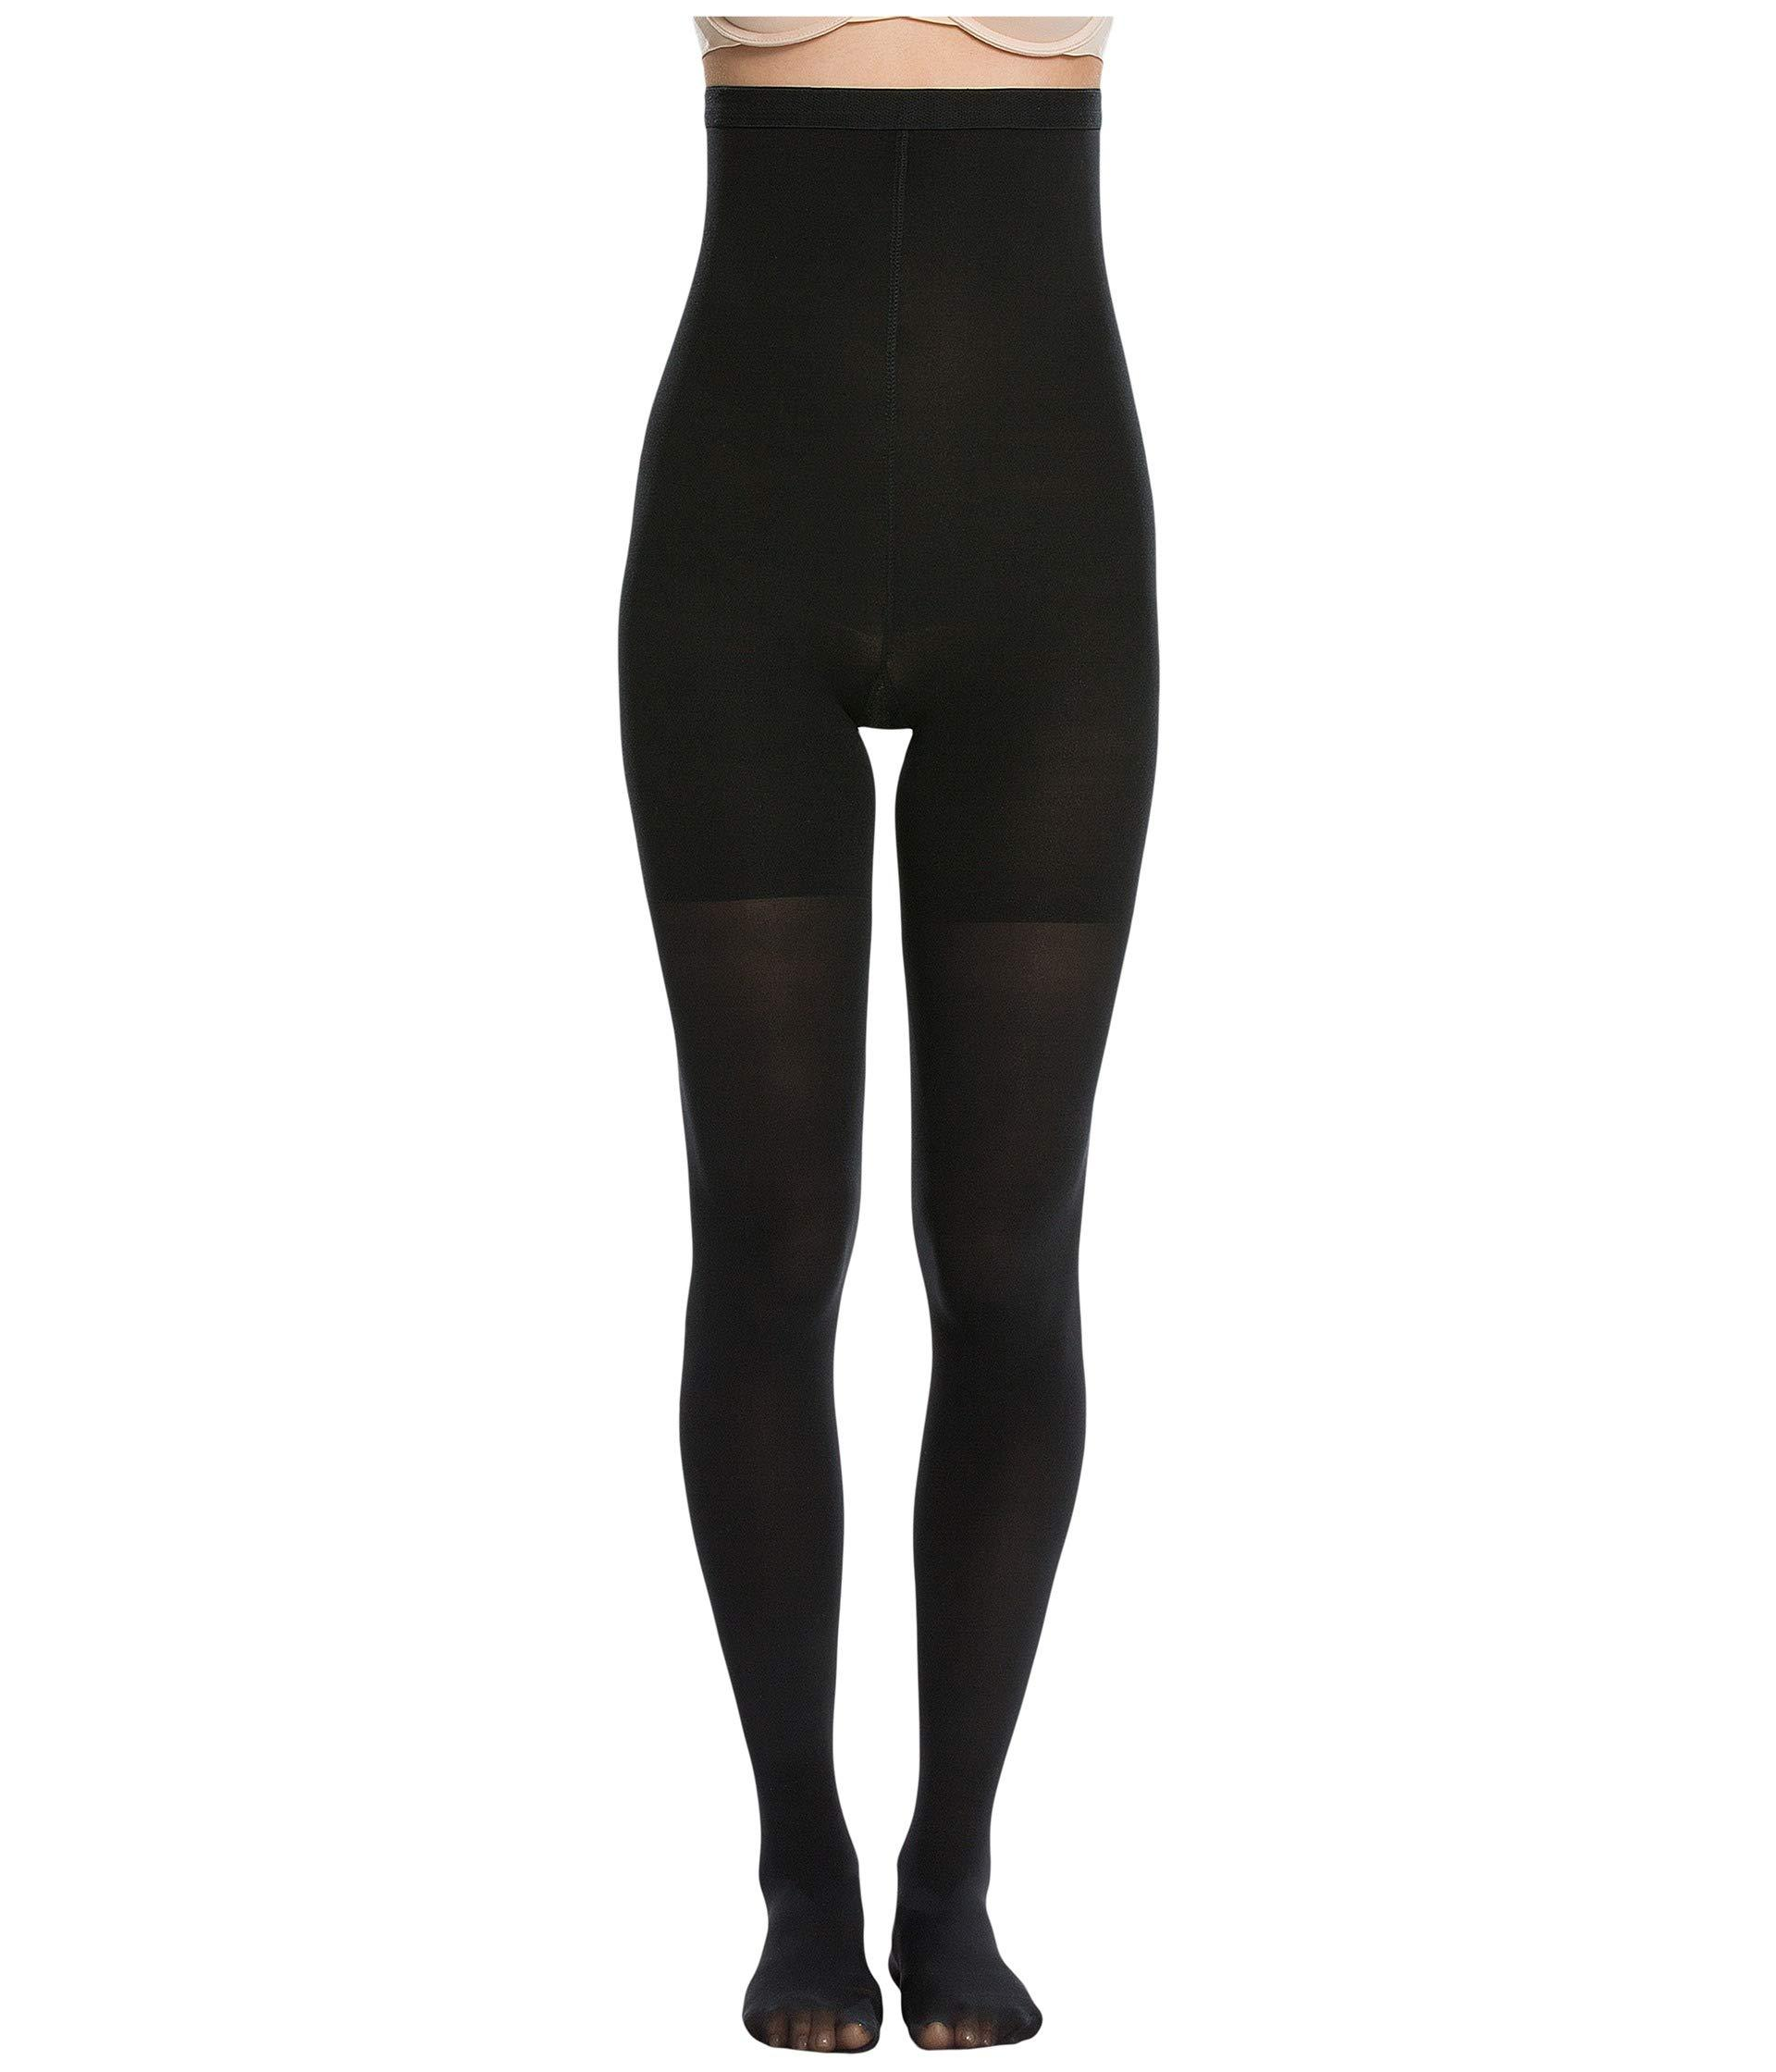 35804fc20e Lyst - Spanx Luxe Leg High-waisted Mid-thigh Shaping Tights (very ...